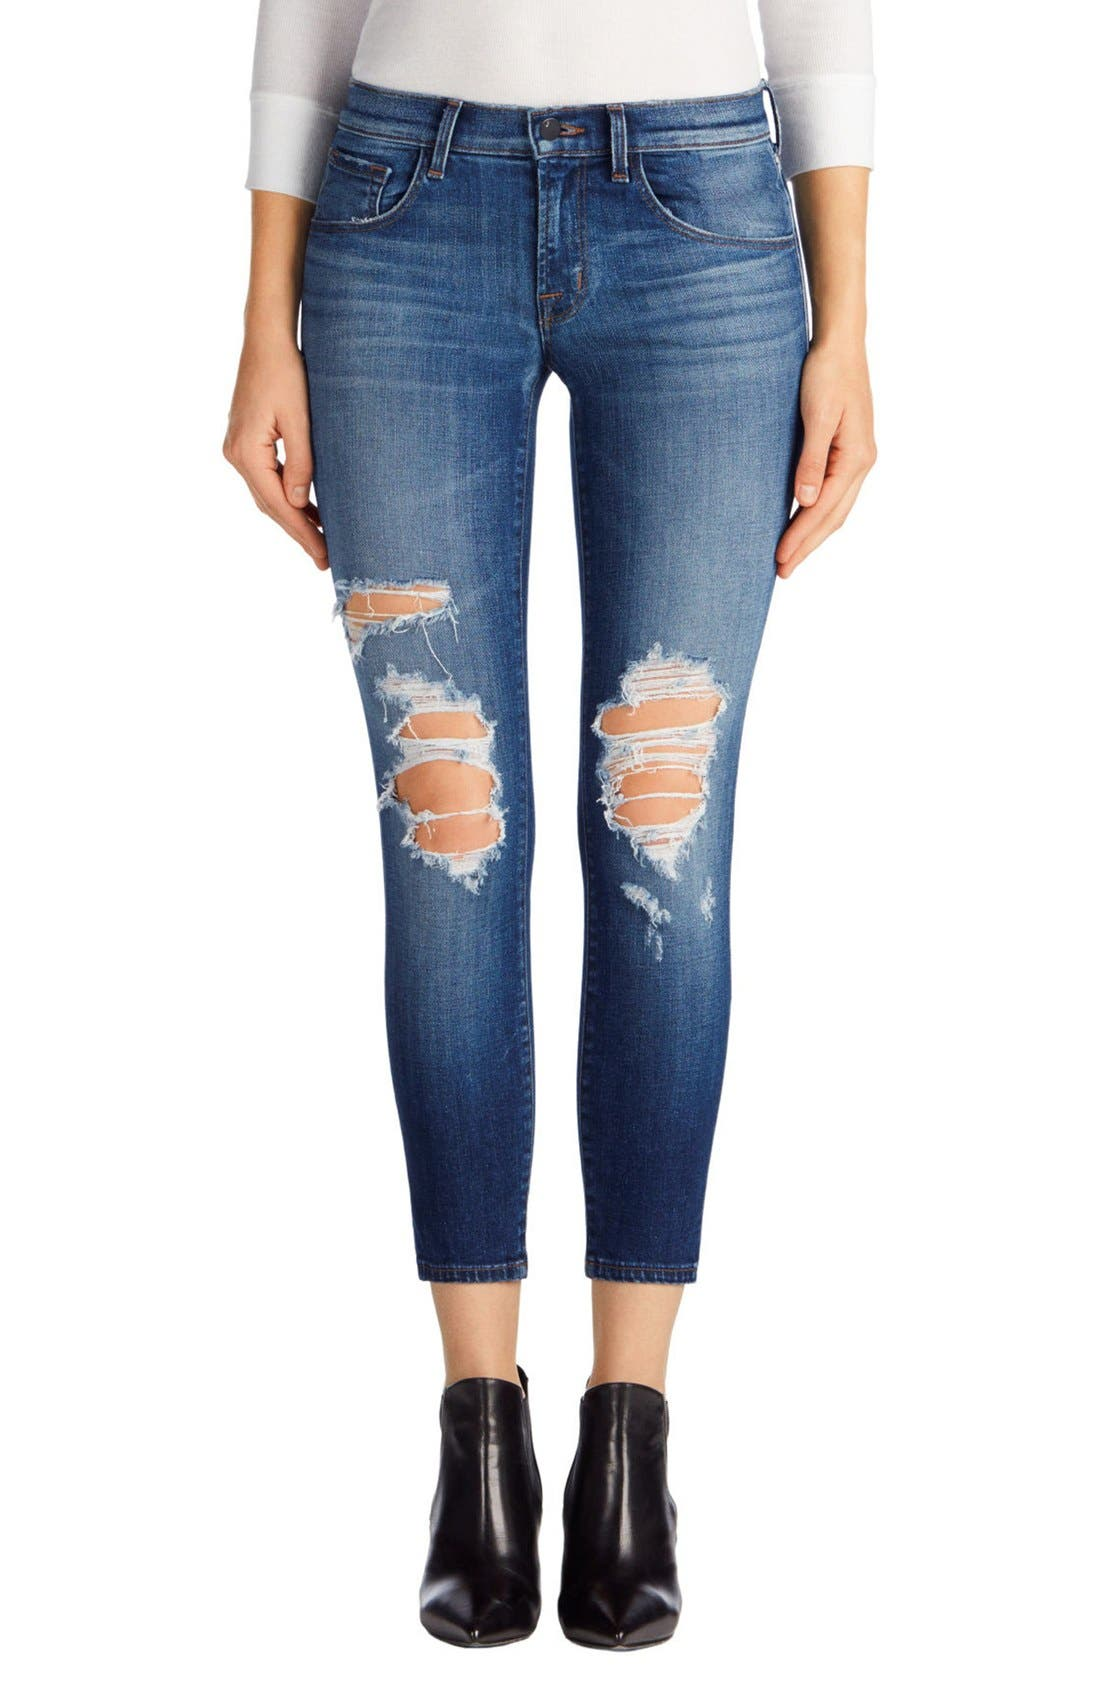 J BRAND Ripped Crop Skinny Jeans